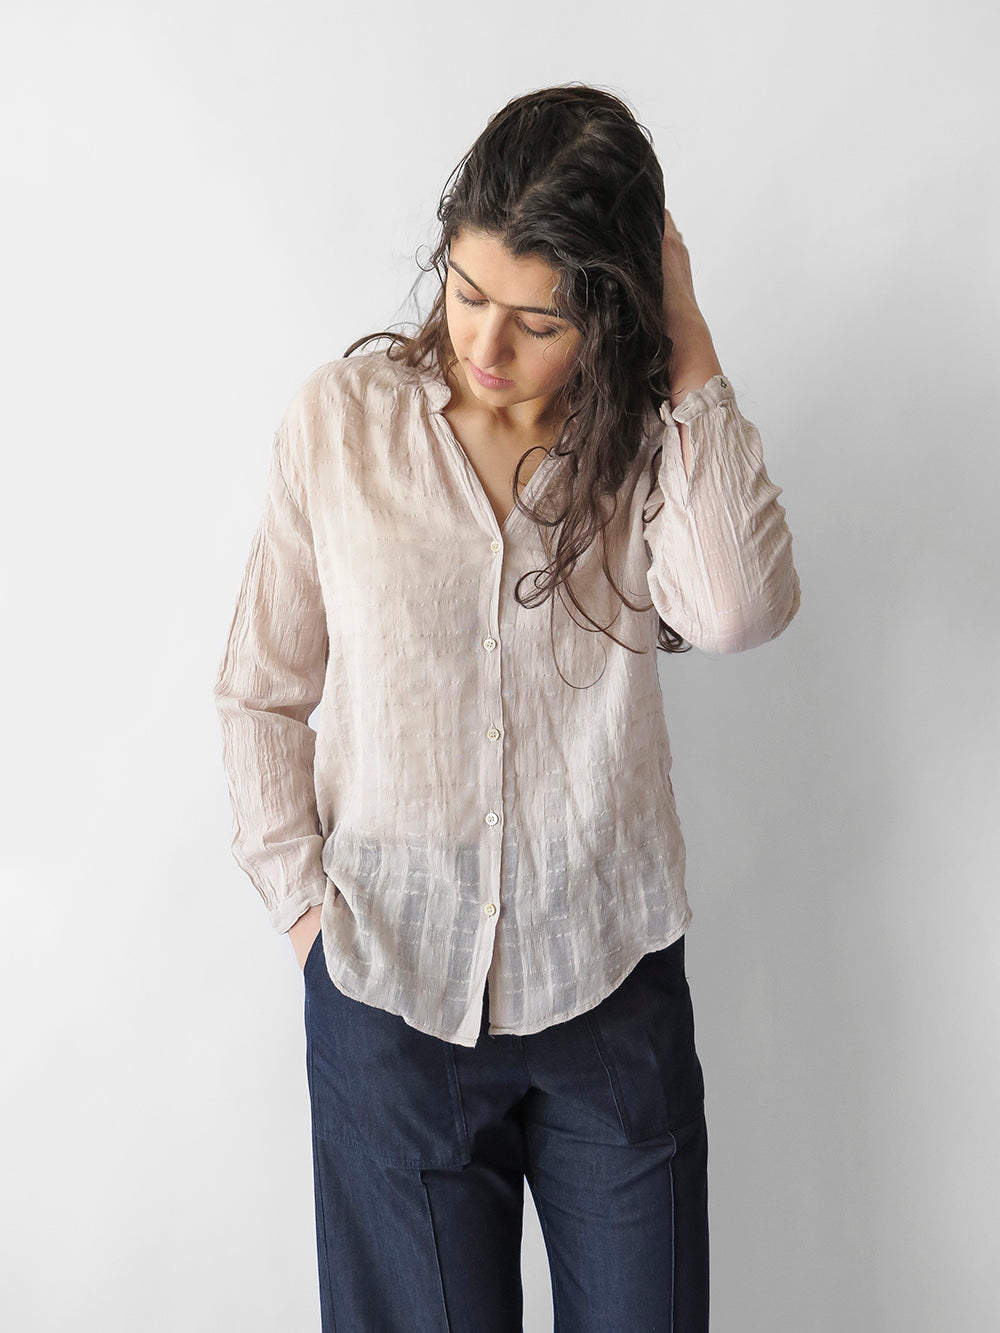 bsbee orchard shirt in white sand